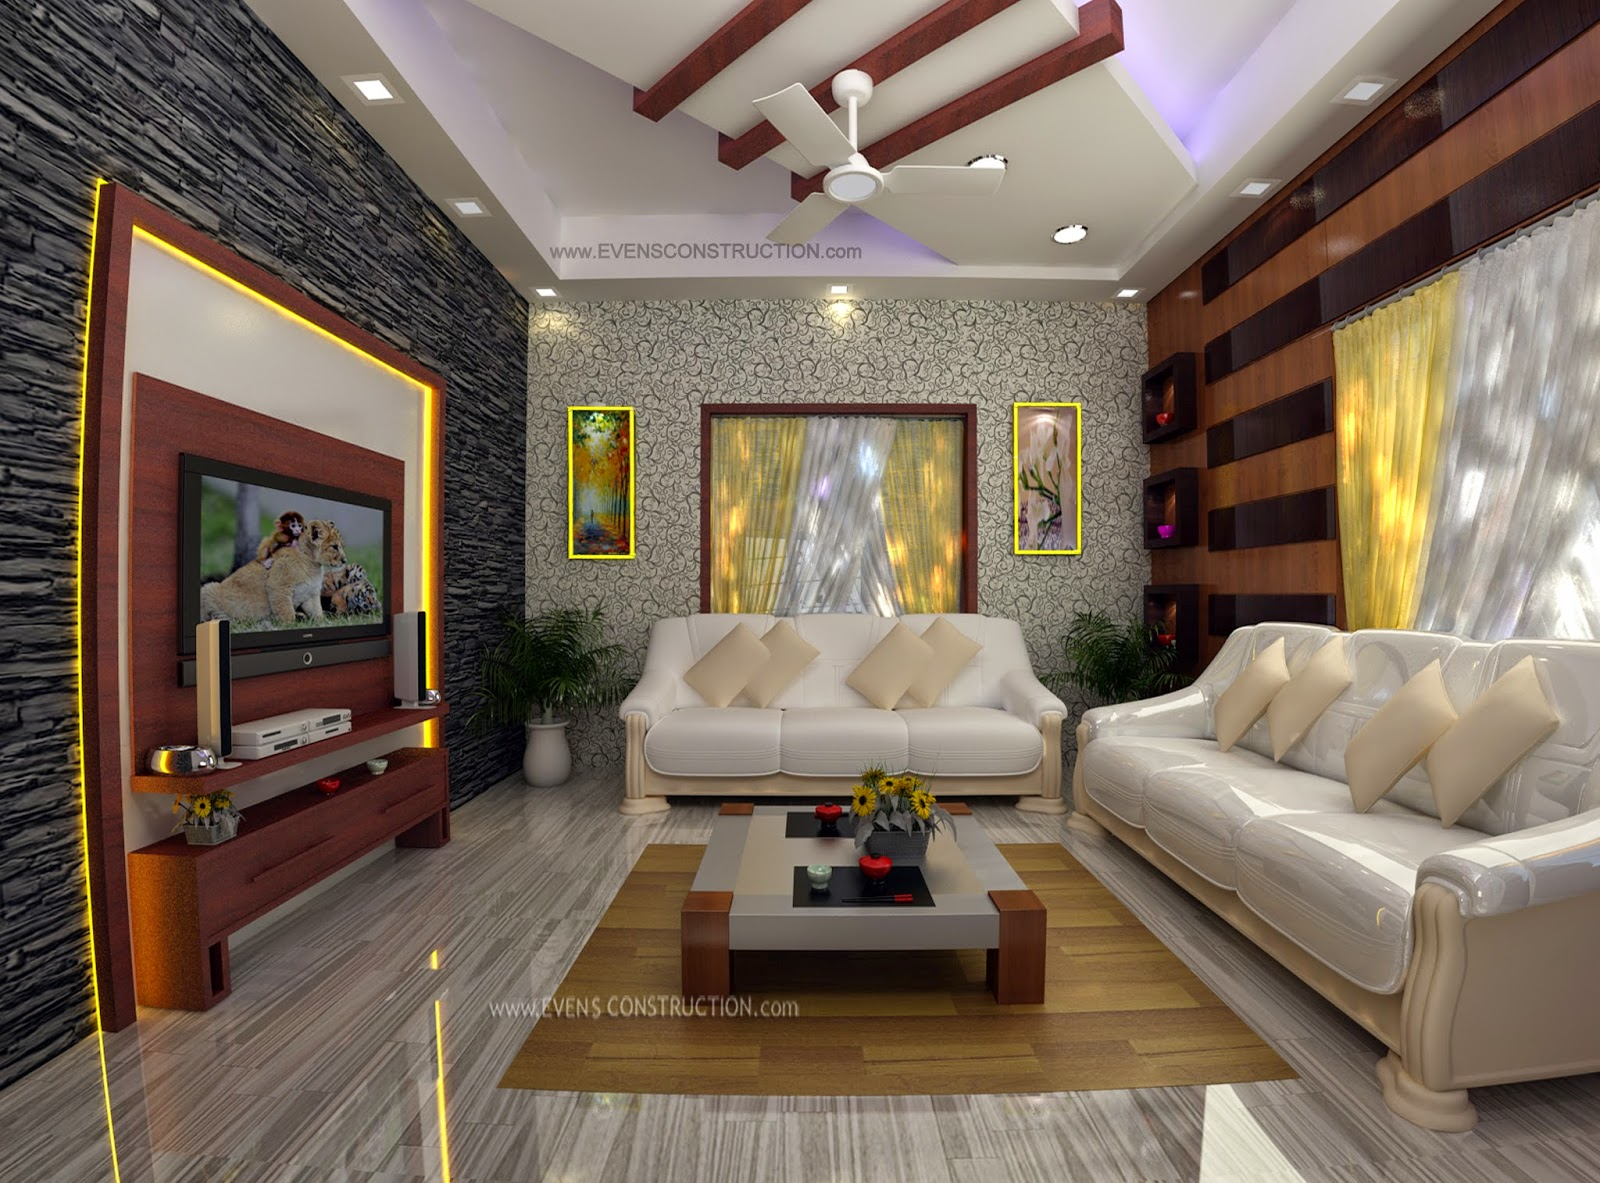 Evens construction pvt ltd living room interior for Kerala home living room designs